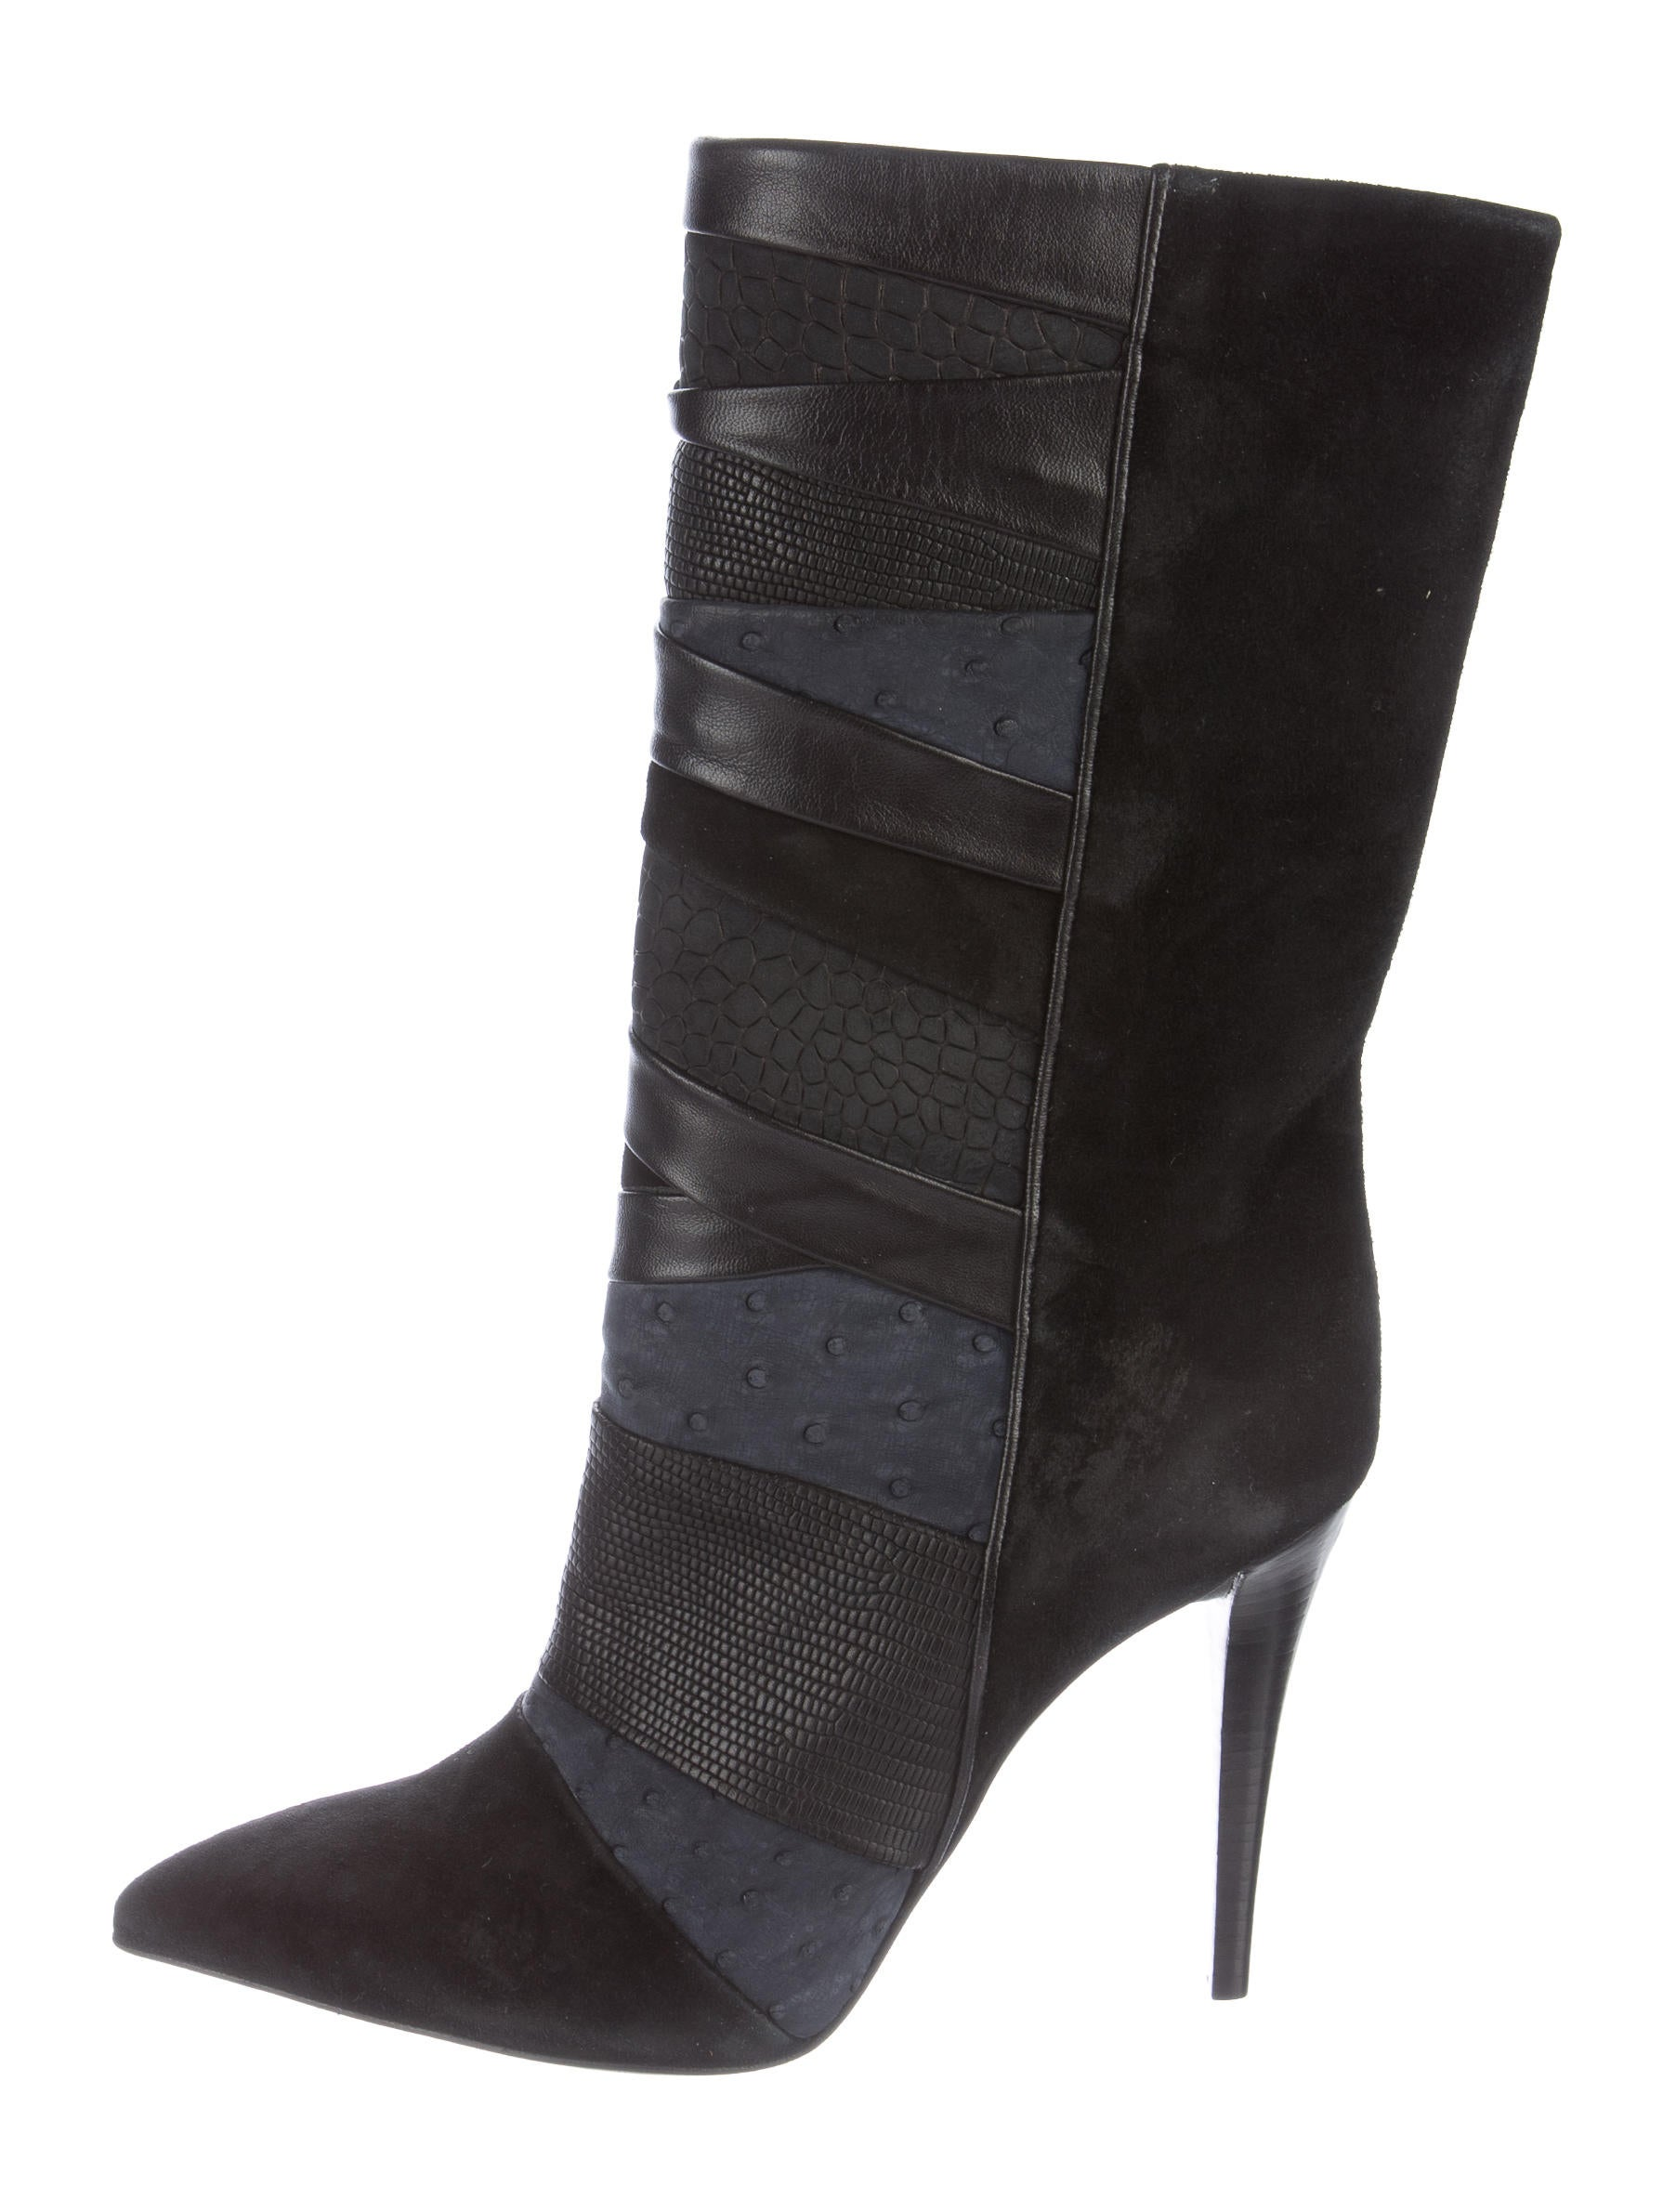 Suede Pointy Toe Ankle Boot - Weekday to weekend, this pointy-toe ankle boot shaped from soft suede gets the job done.